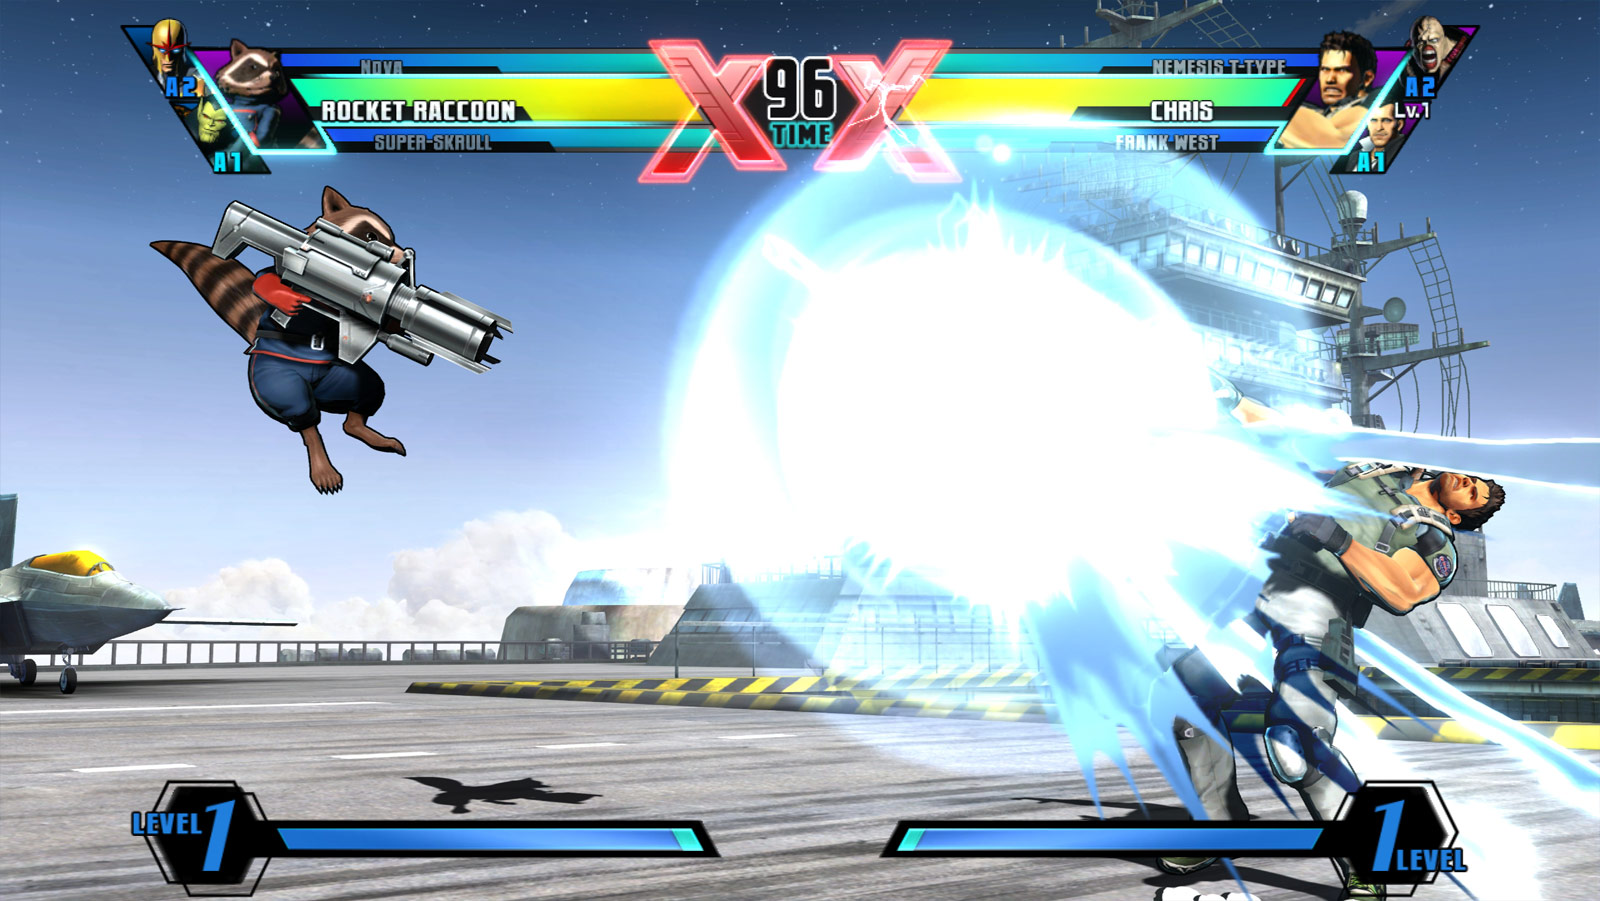 ... West and Rocket Raccoon in Ultimate Marvel vs. Capcom 3 image #13